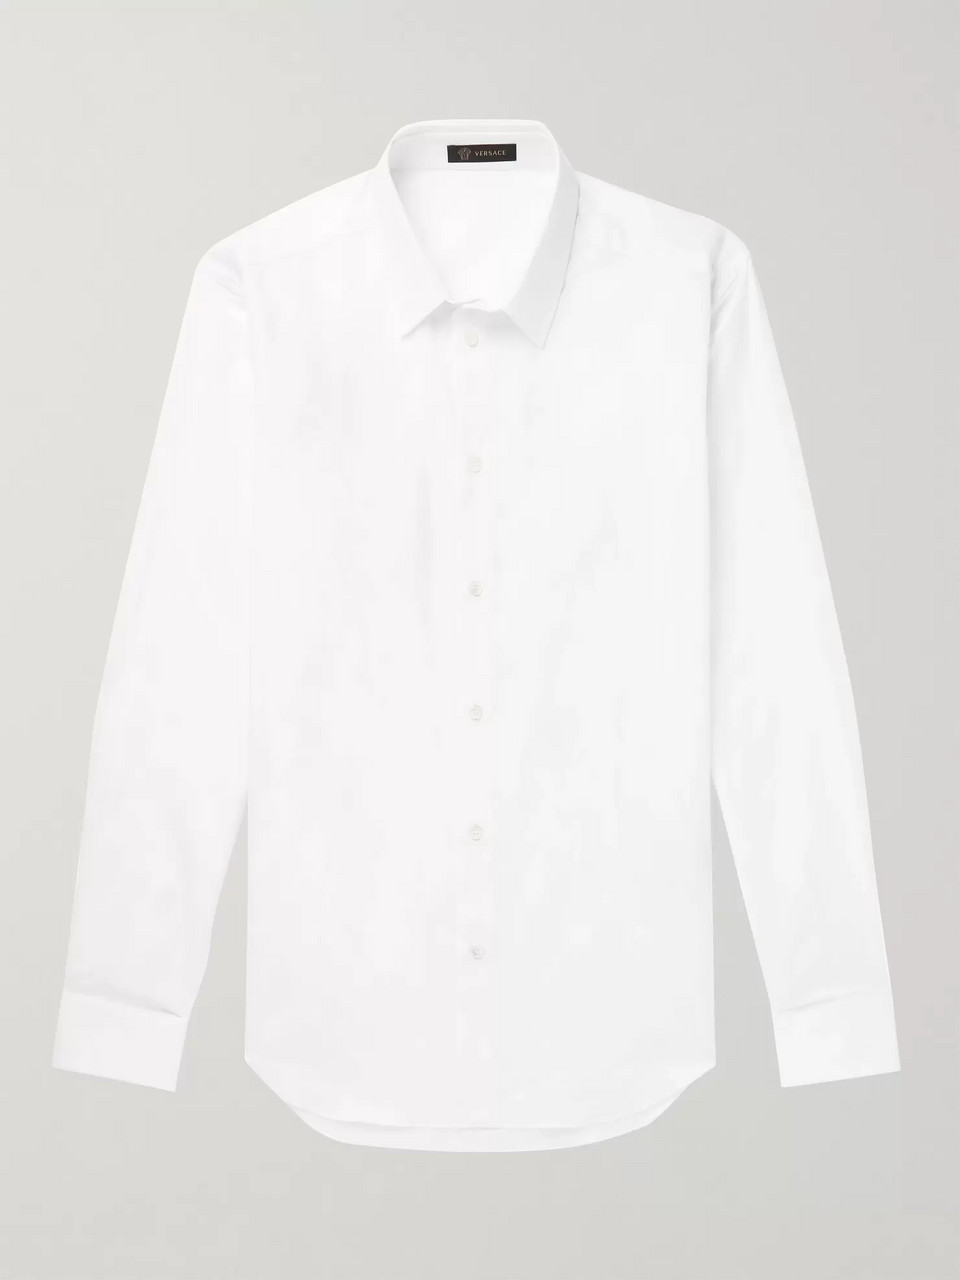 Versace Slim-Fit Cotton-Jacquard Shirt